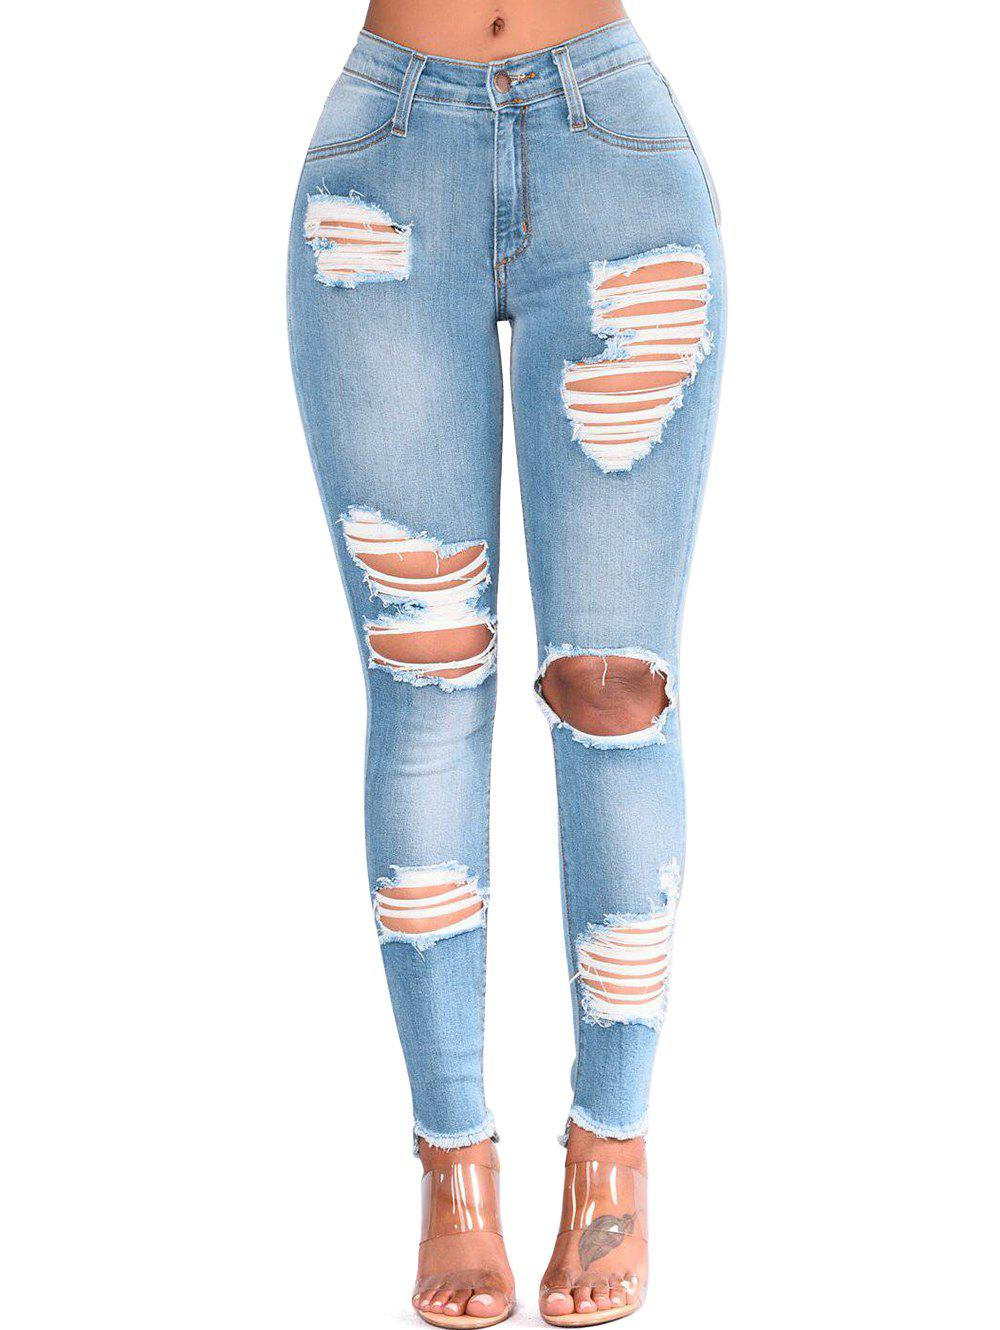 Shop Ripped Cut Out Frayed Skinny Jeans